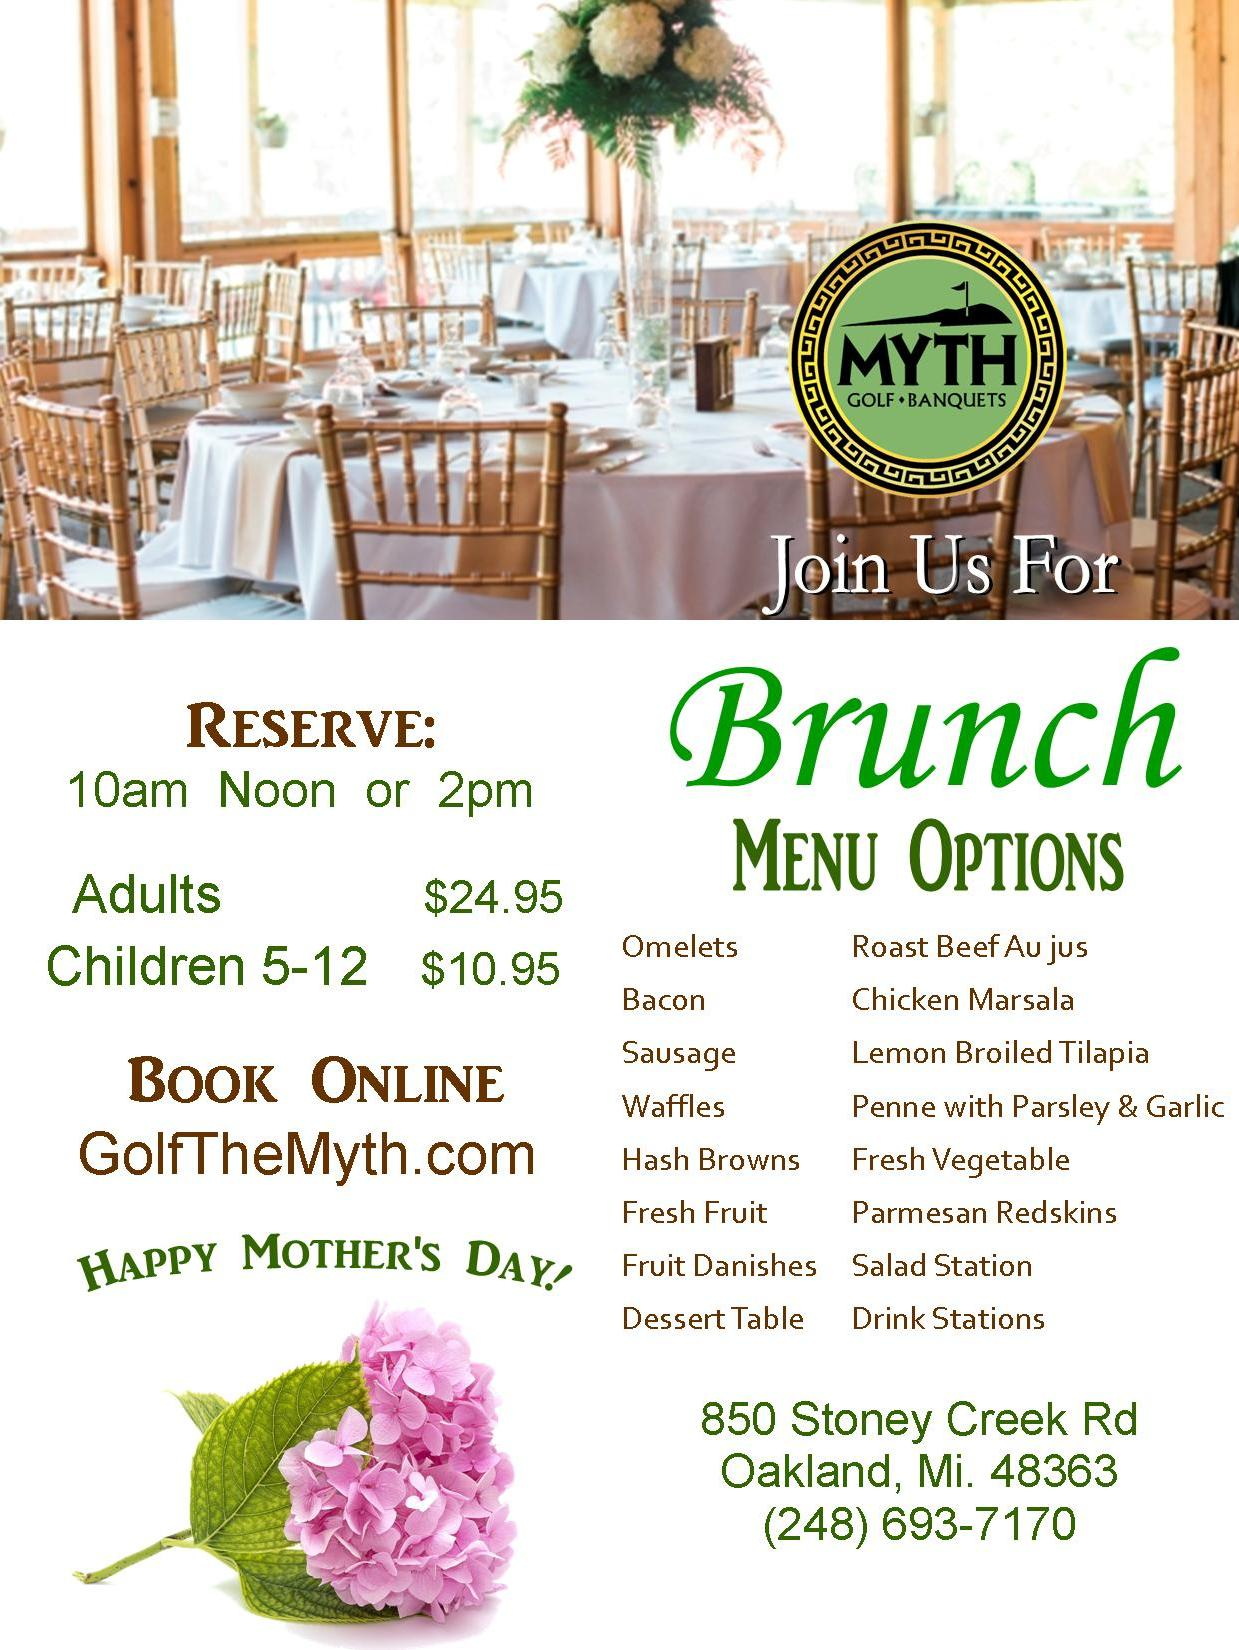 Sunday Brunch at the Myth